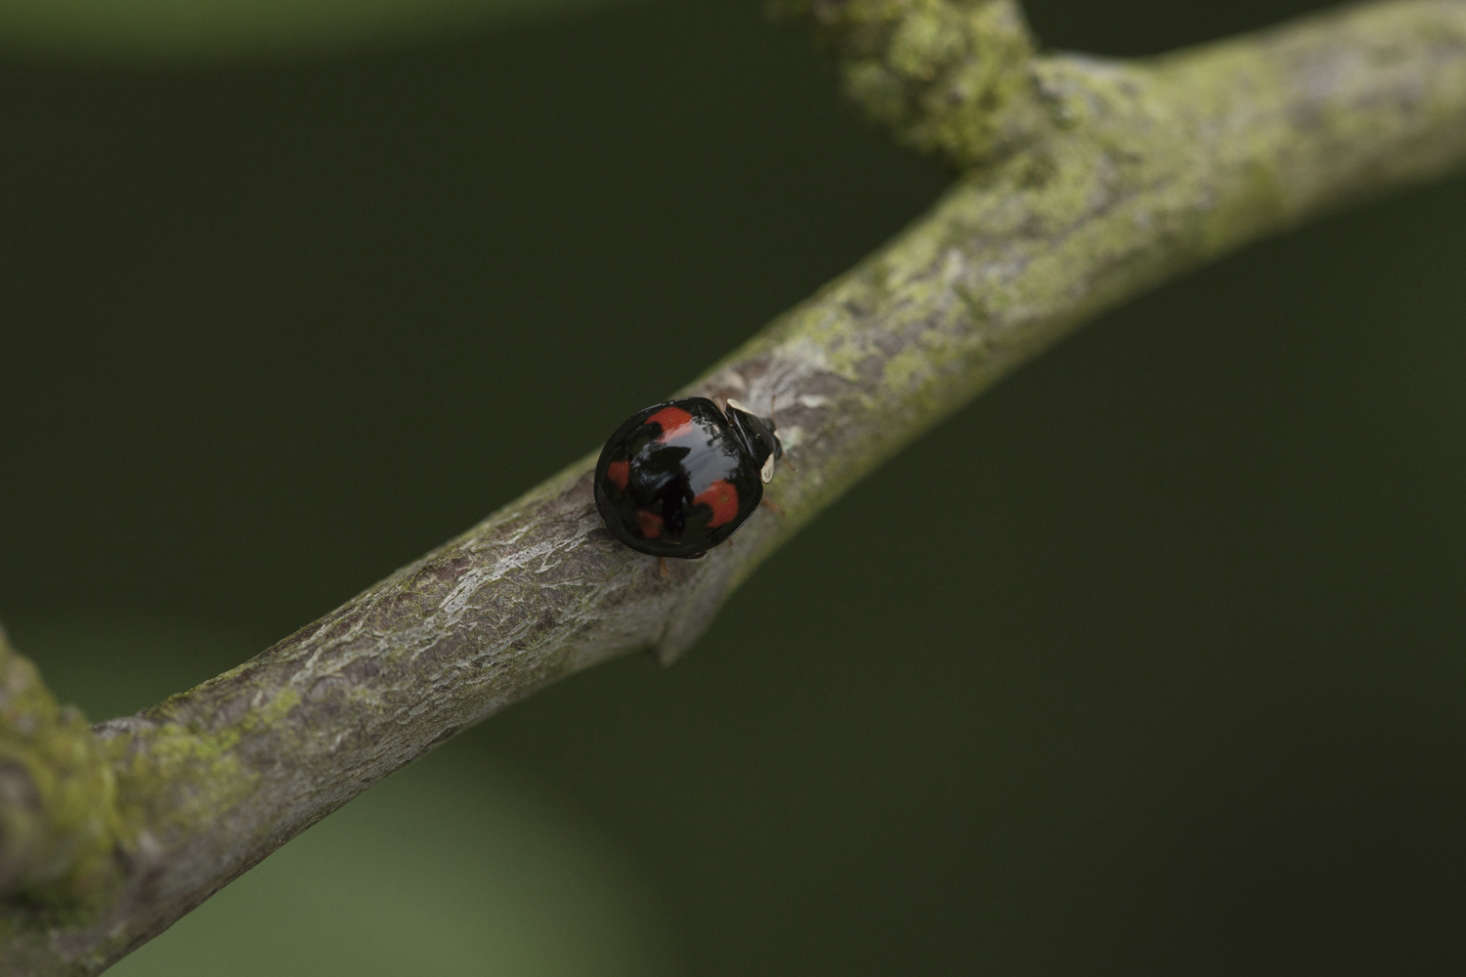 A melanic ladybird beetle (melanic signifies the black base in its coloring). It is similar to a native pine ladybird but is in fact a harlequin.